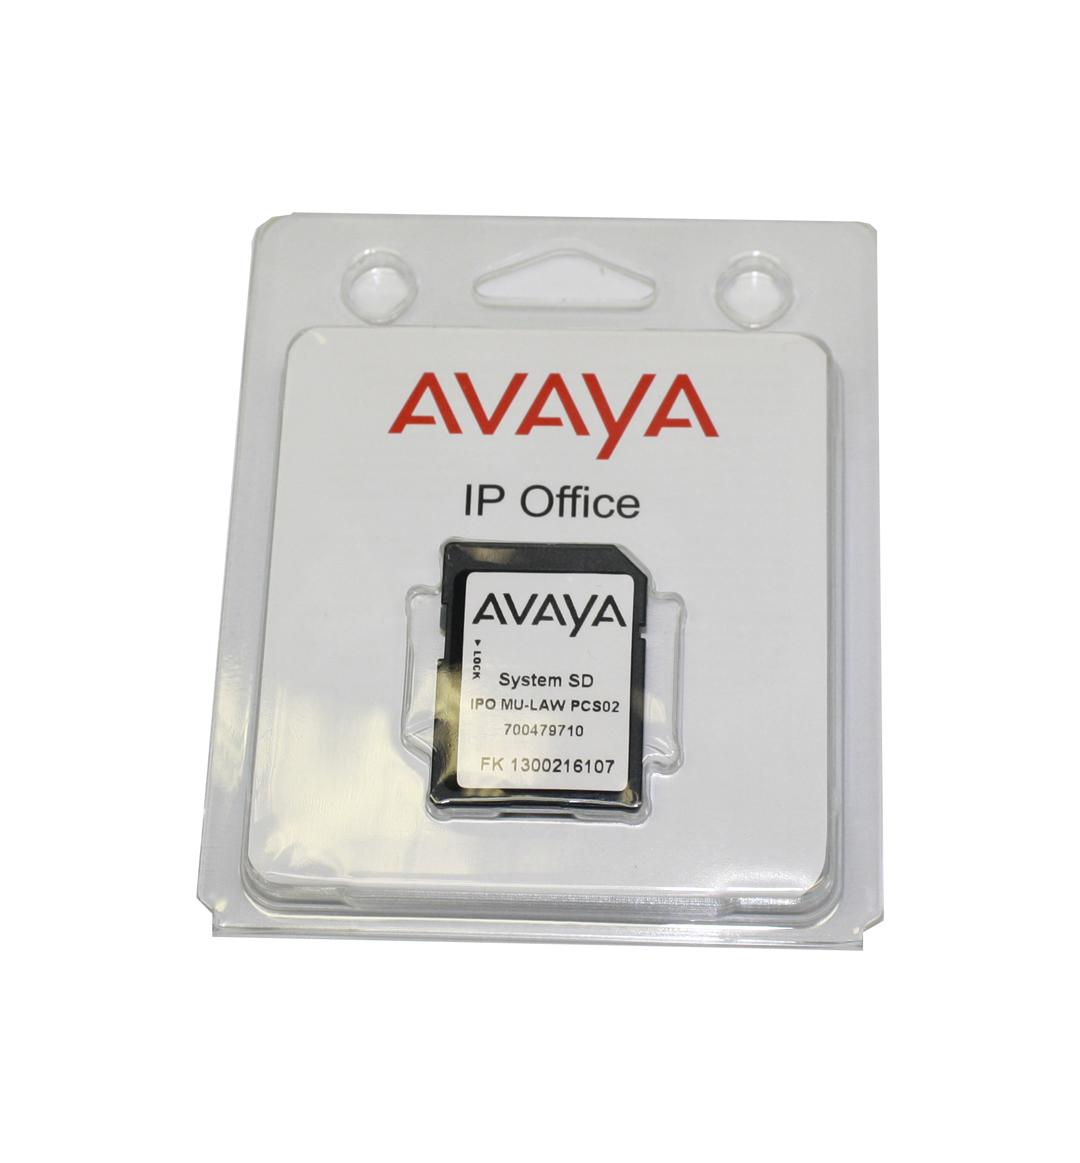 Avaya IP500 V2 System SD Card - Mu-Law Version, NEW